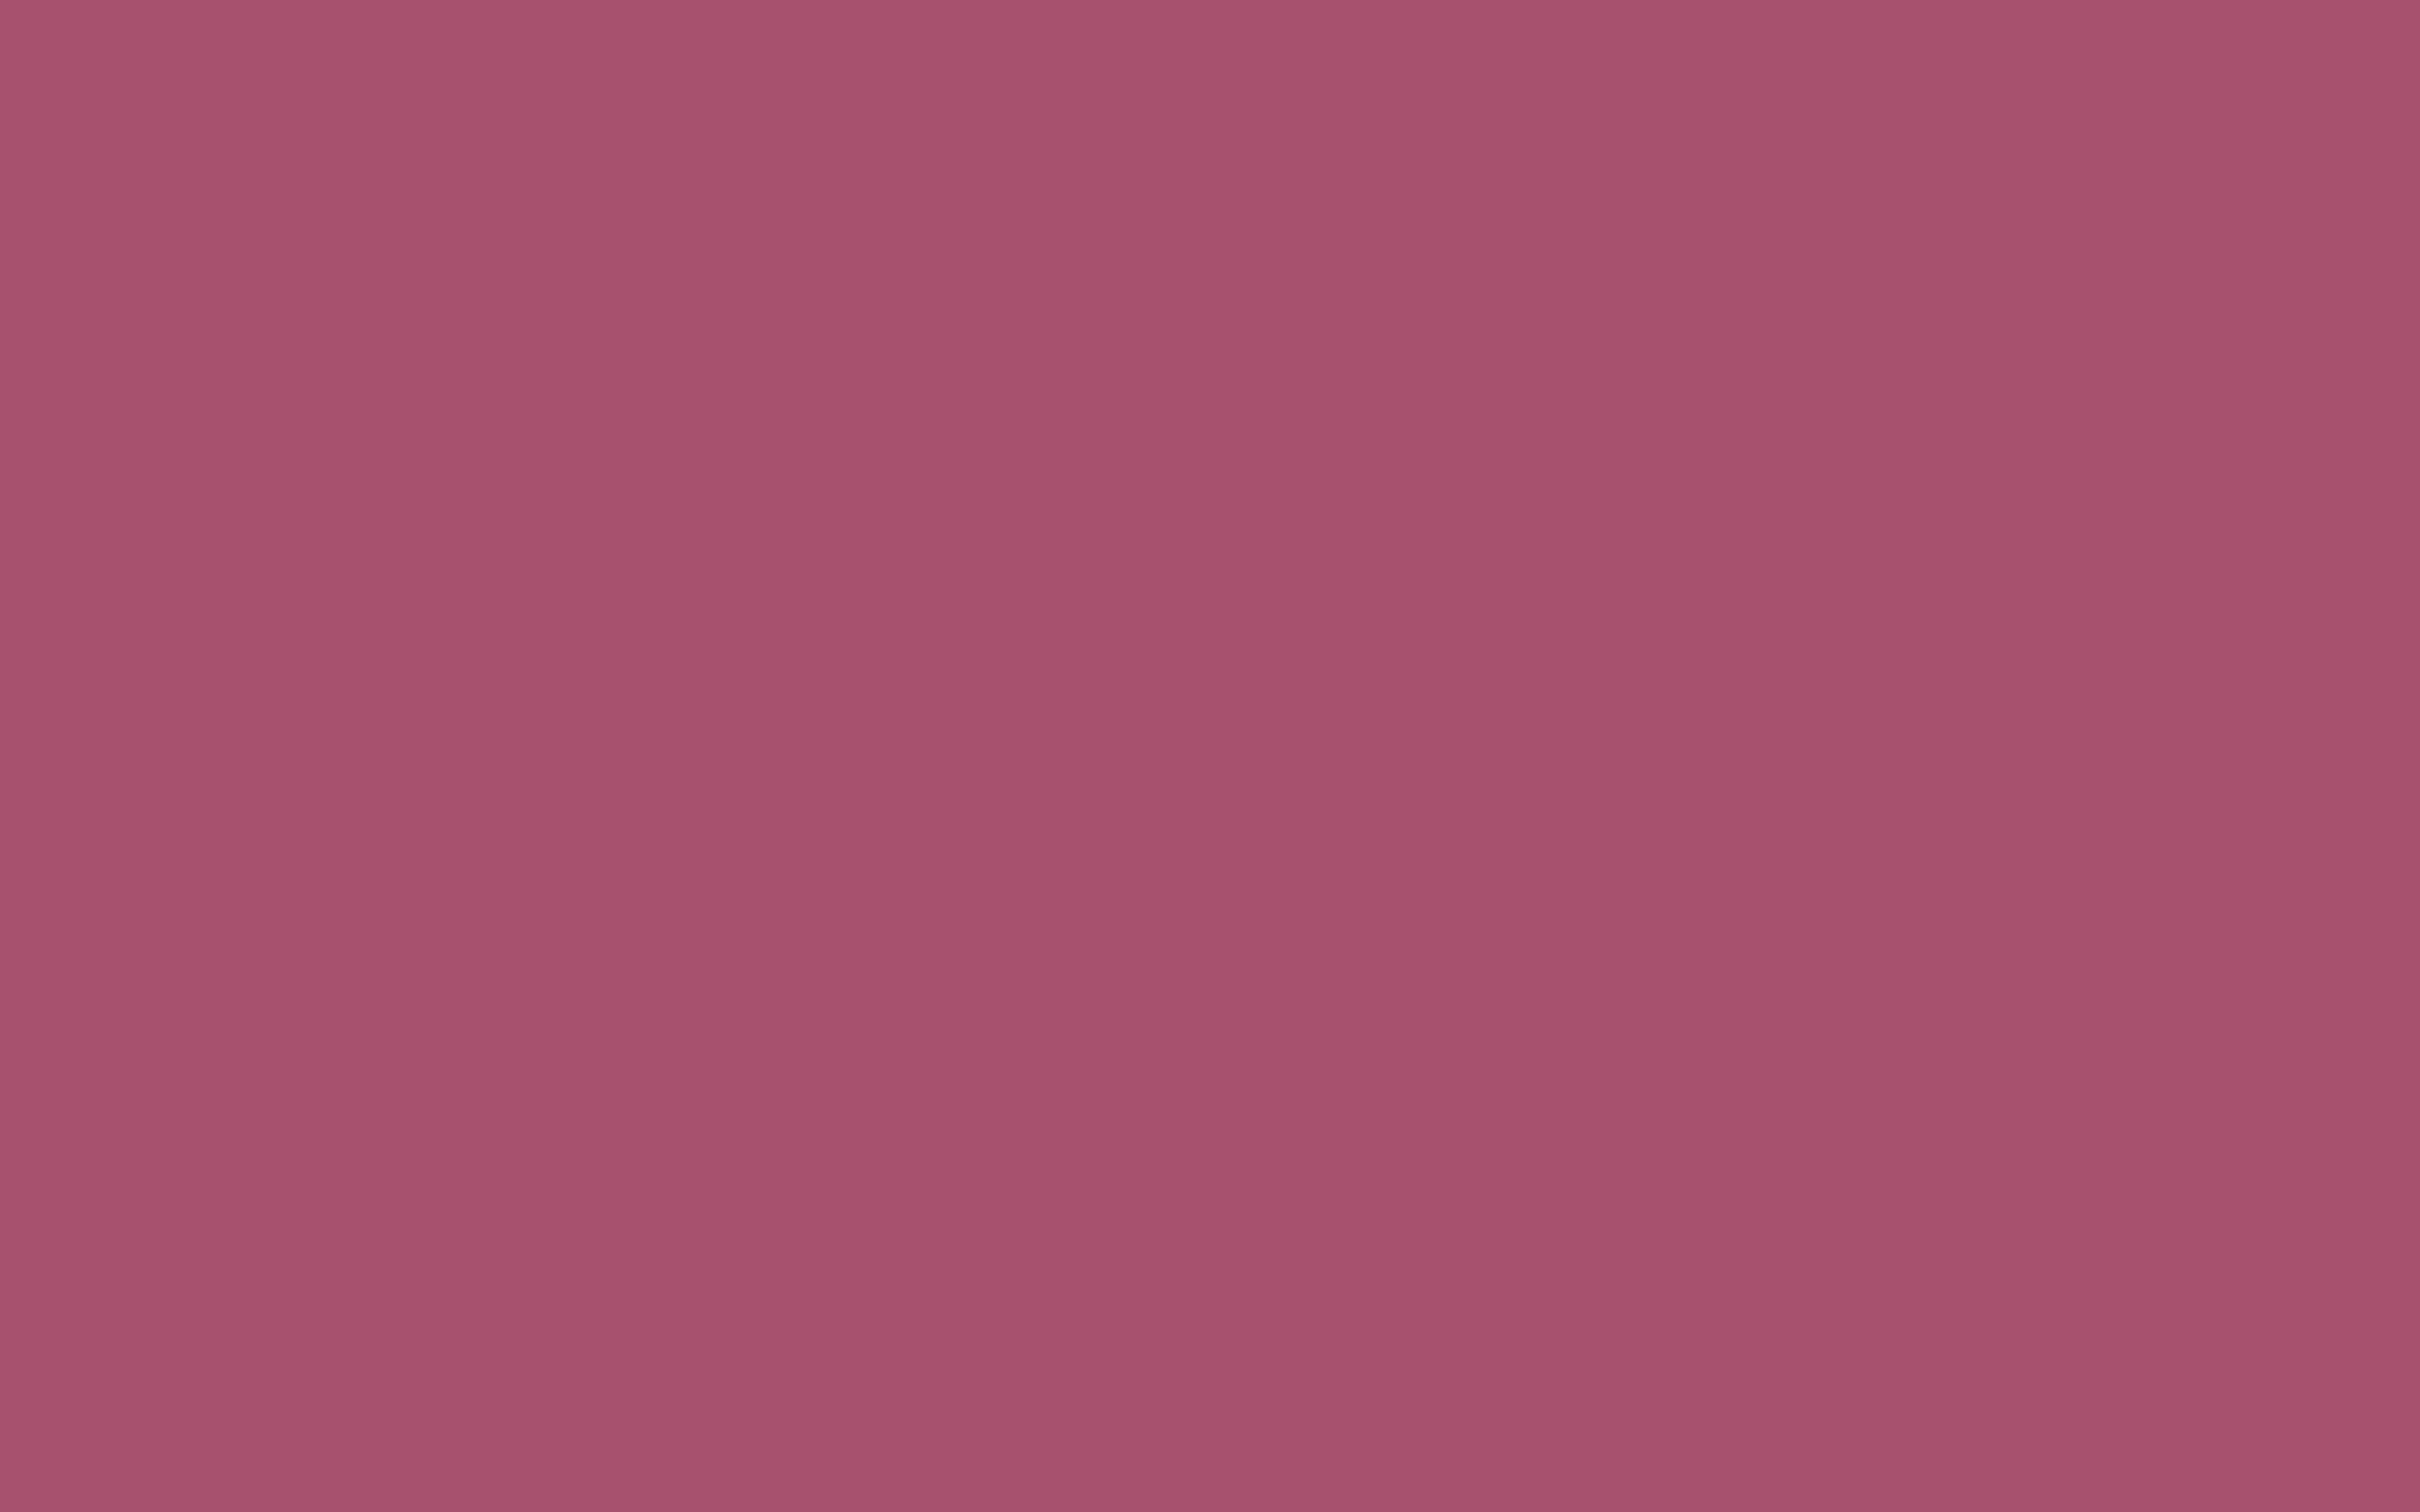 2560x1600 China Rose Solid Color Background